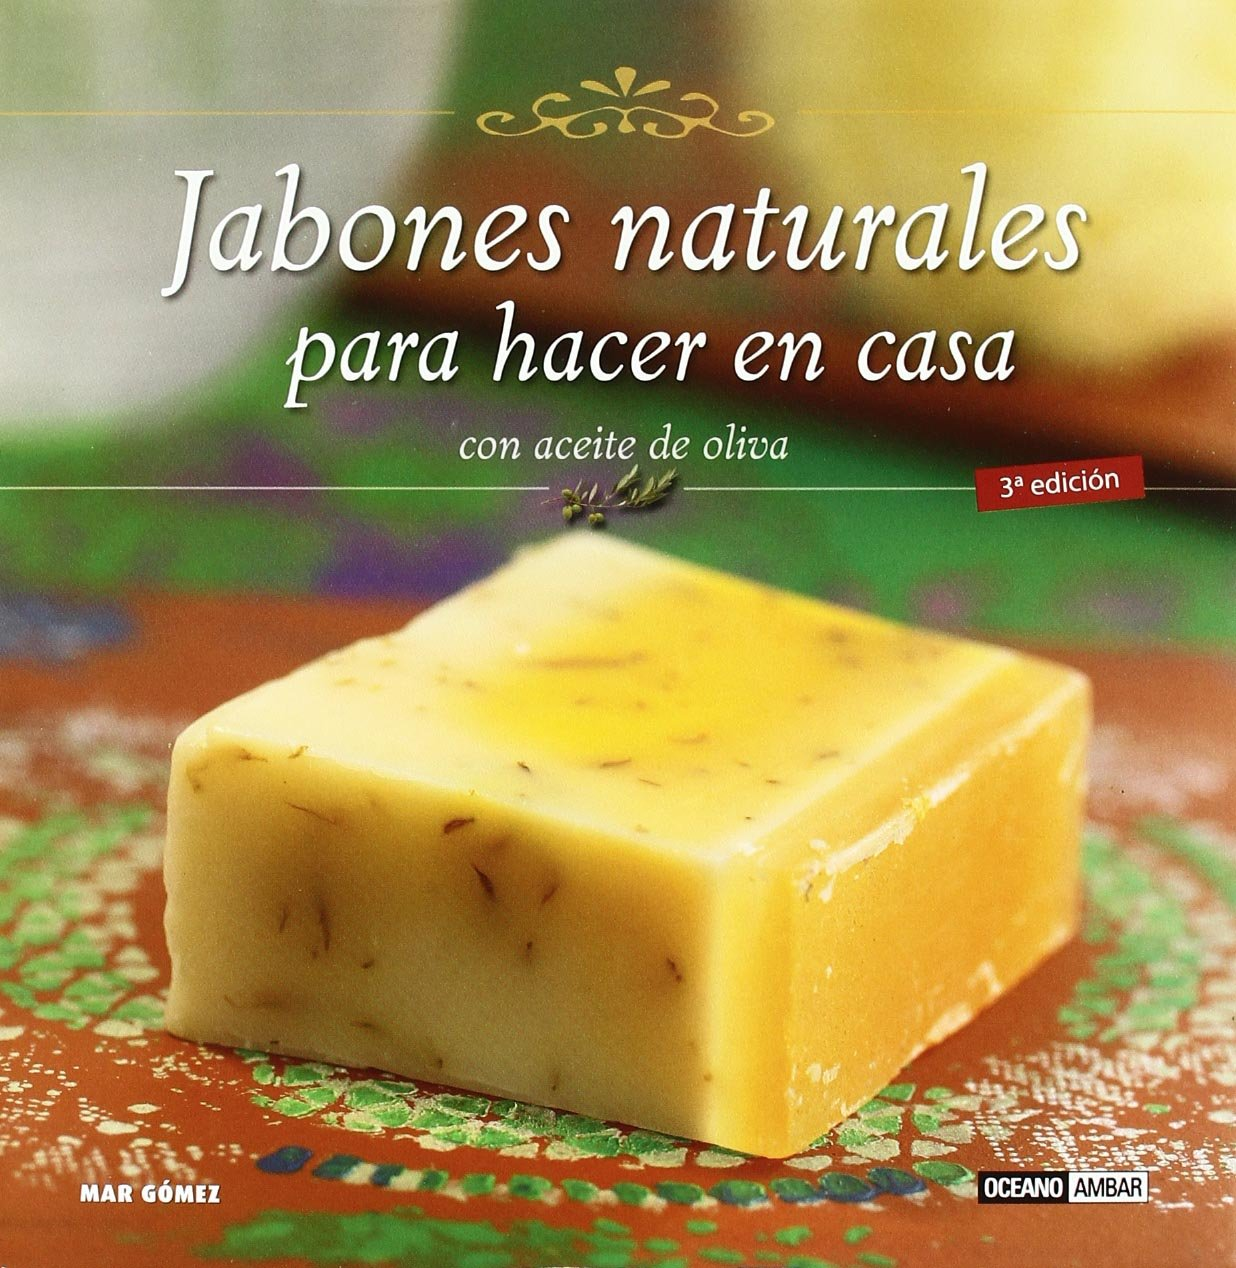 Jabones naturales para hacer en casa/ Make Natural Soap At Home: Con aceite de oliva/ With Olive Oil (Spanish Edition): Mar Gomez: 9788475565828: ...